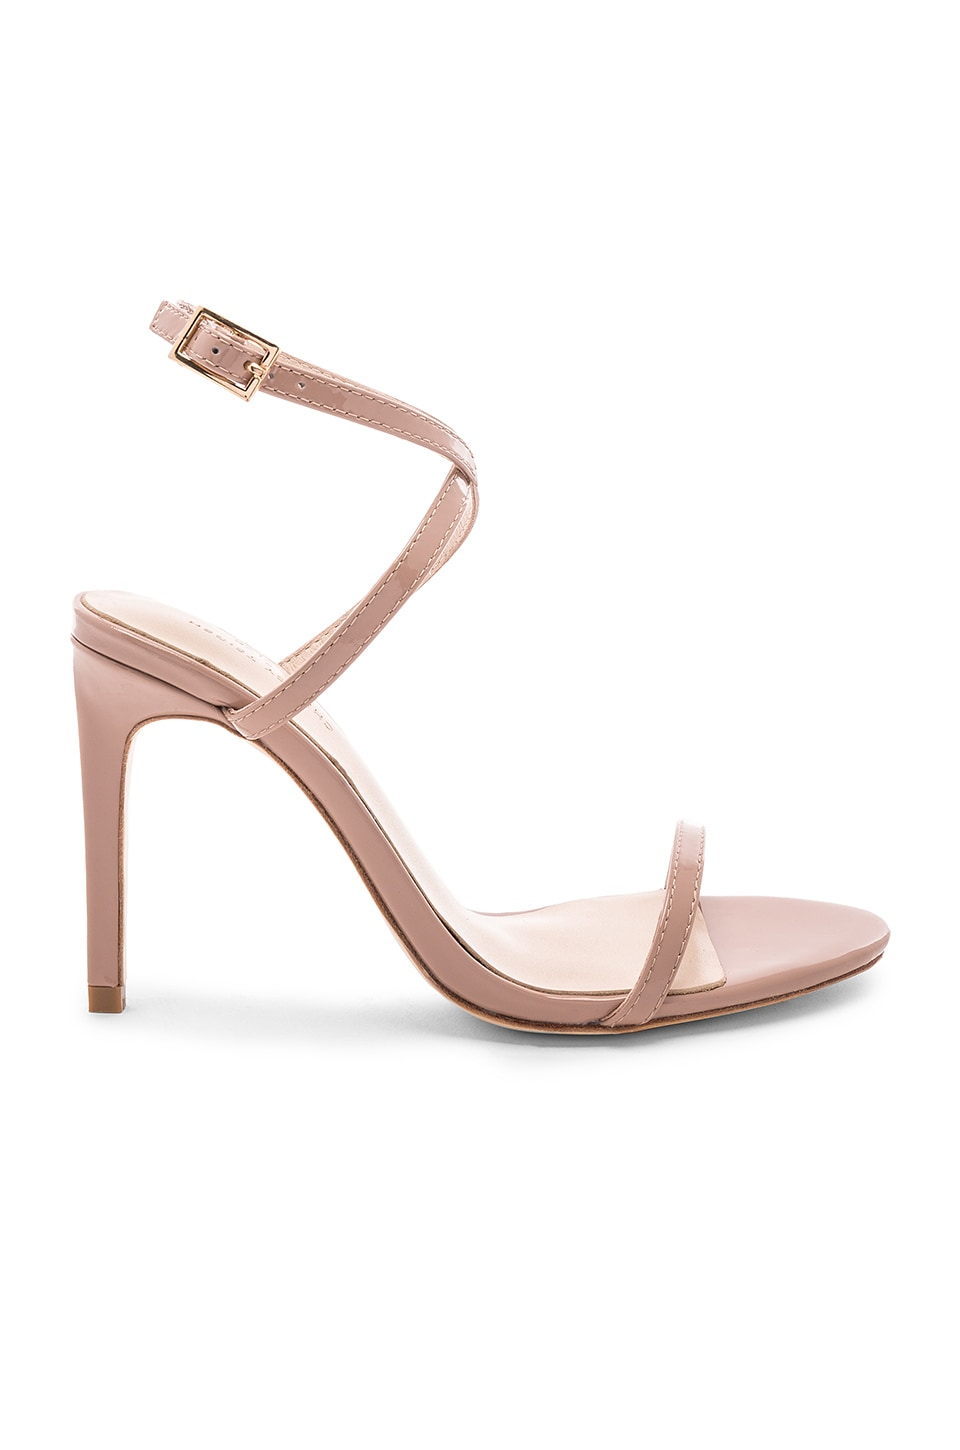 CHRISSY TEIGEN X Revolve Kai Heel in Tan